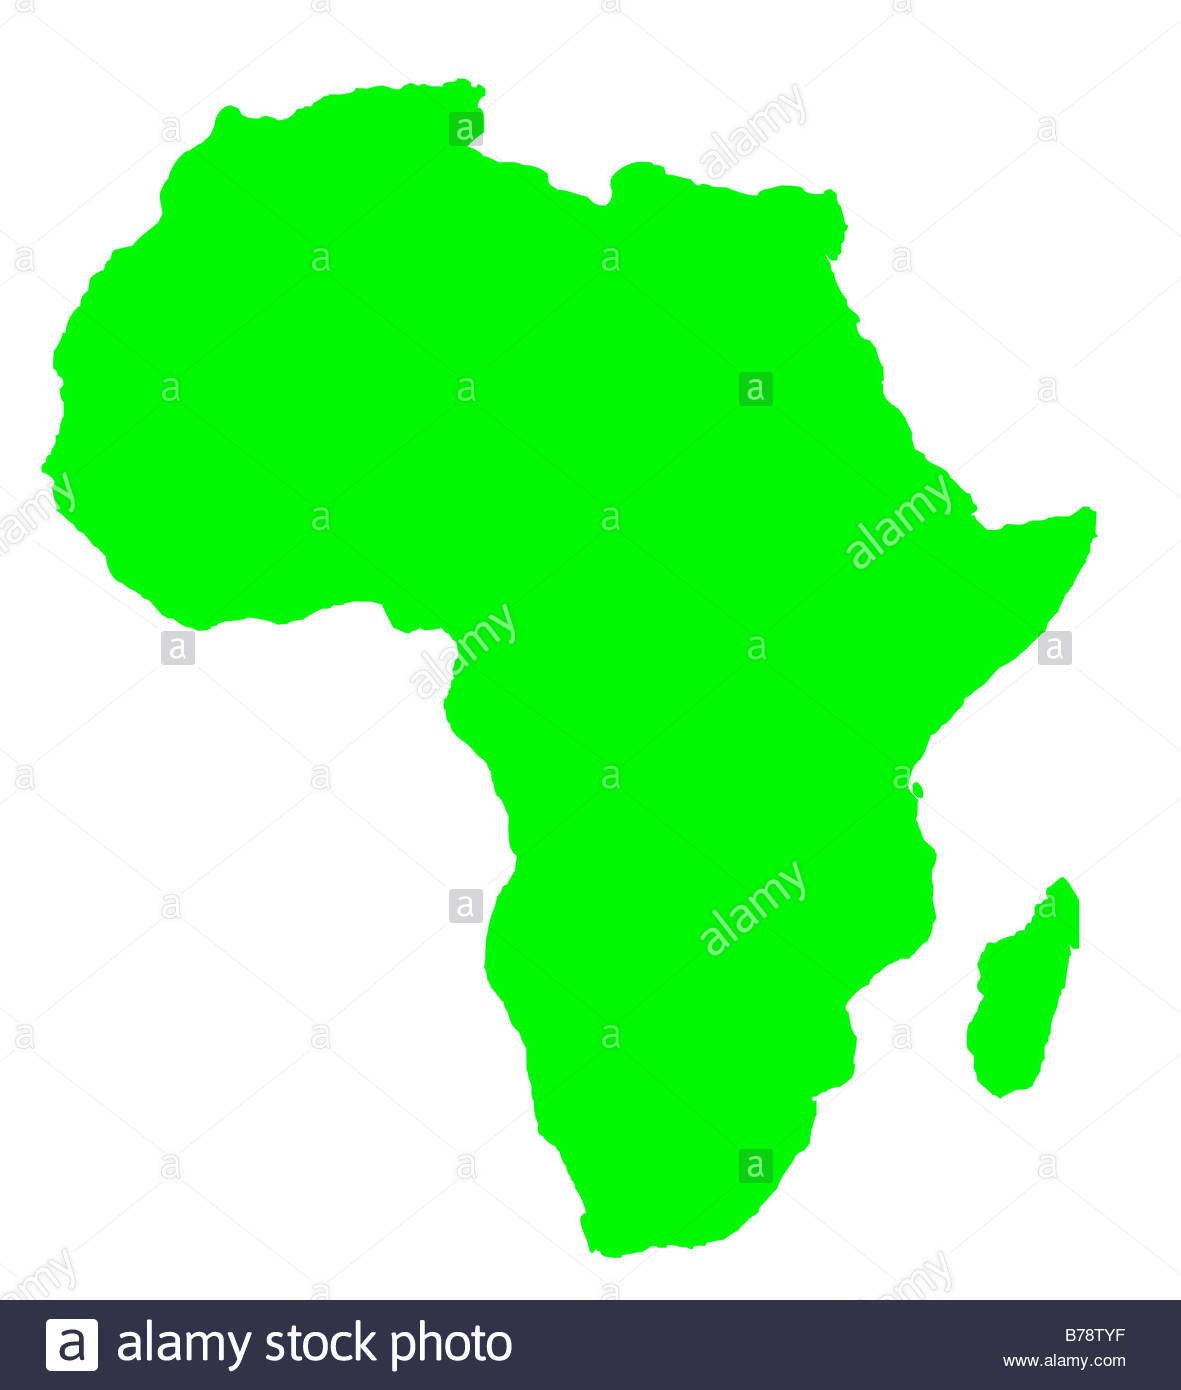 1181x1390 Outline Map Of Africa Continent In Green Isolated On White